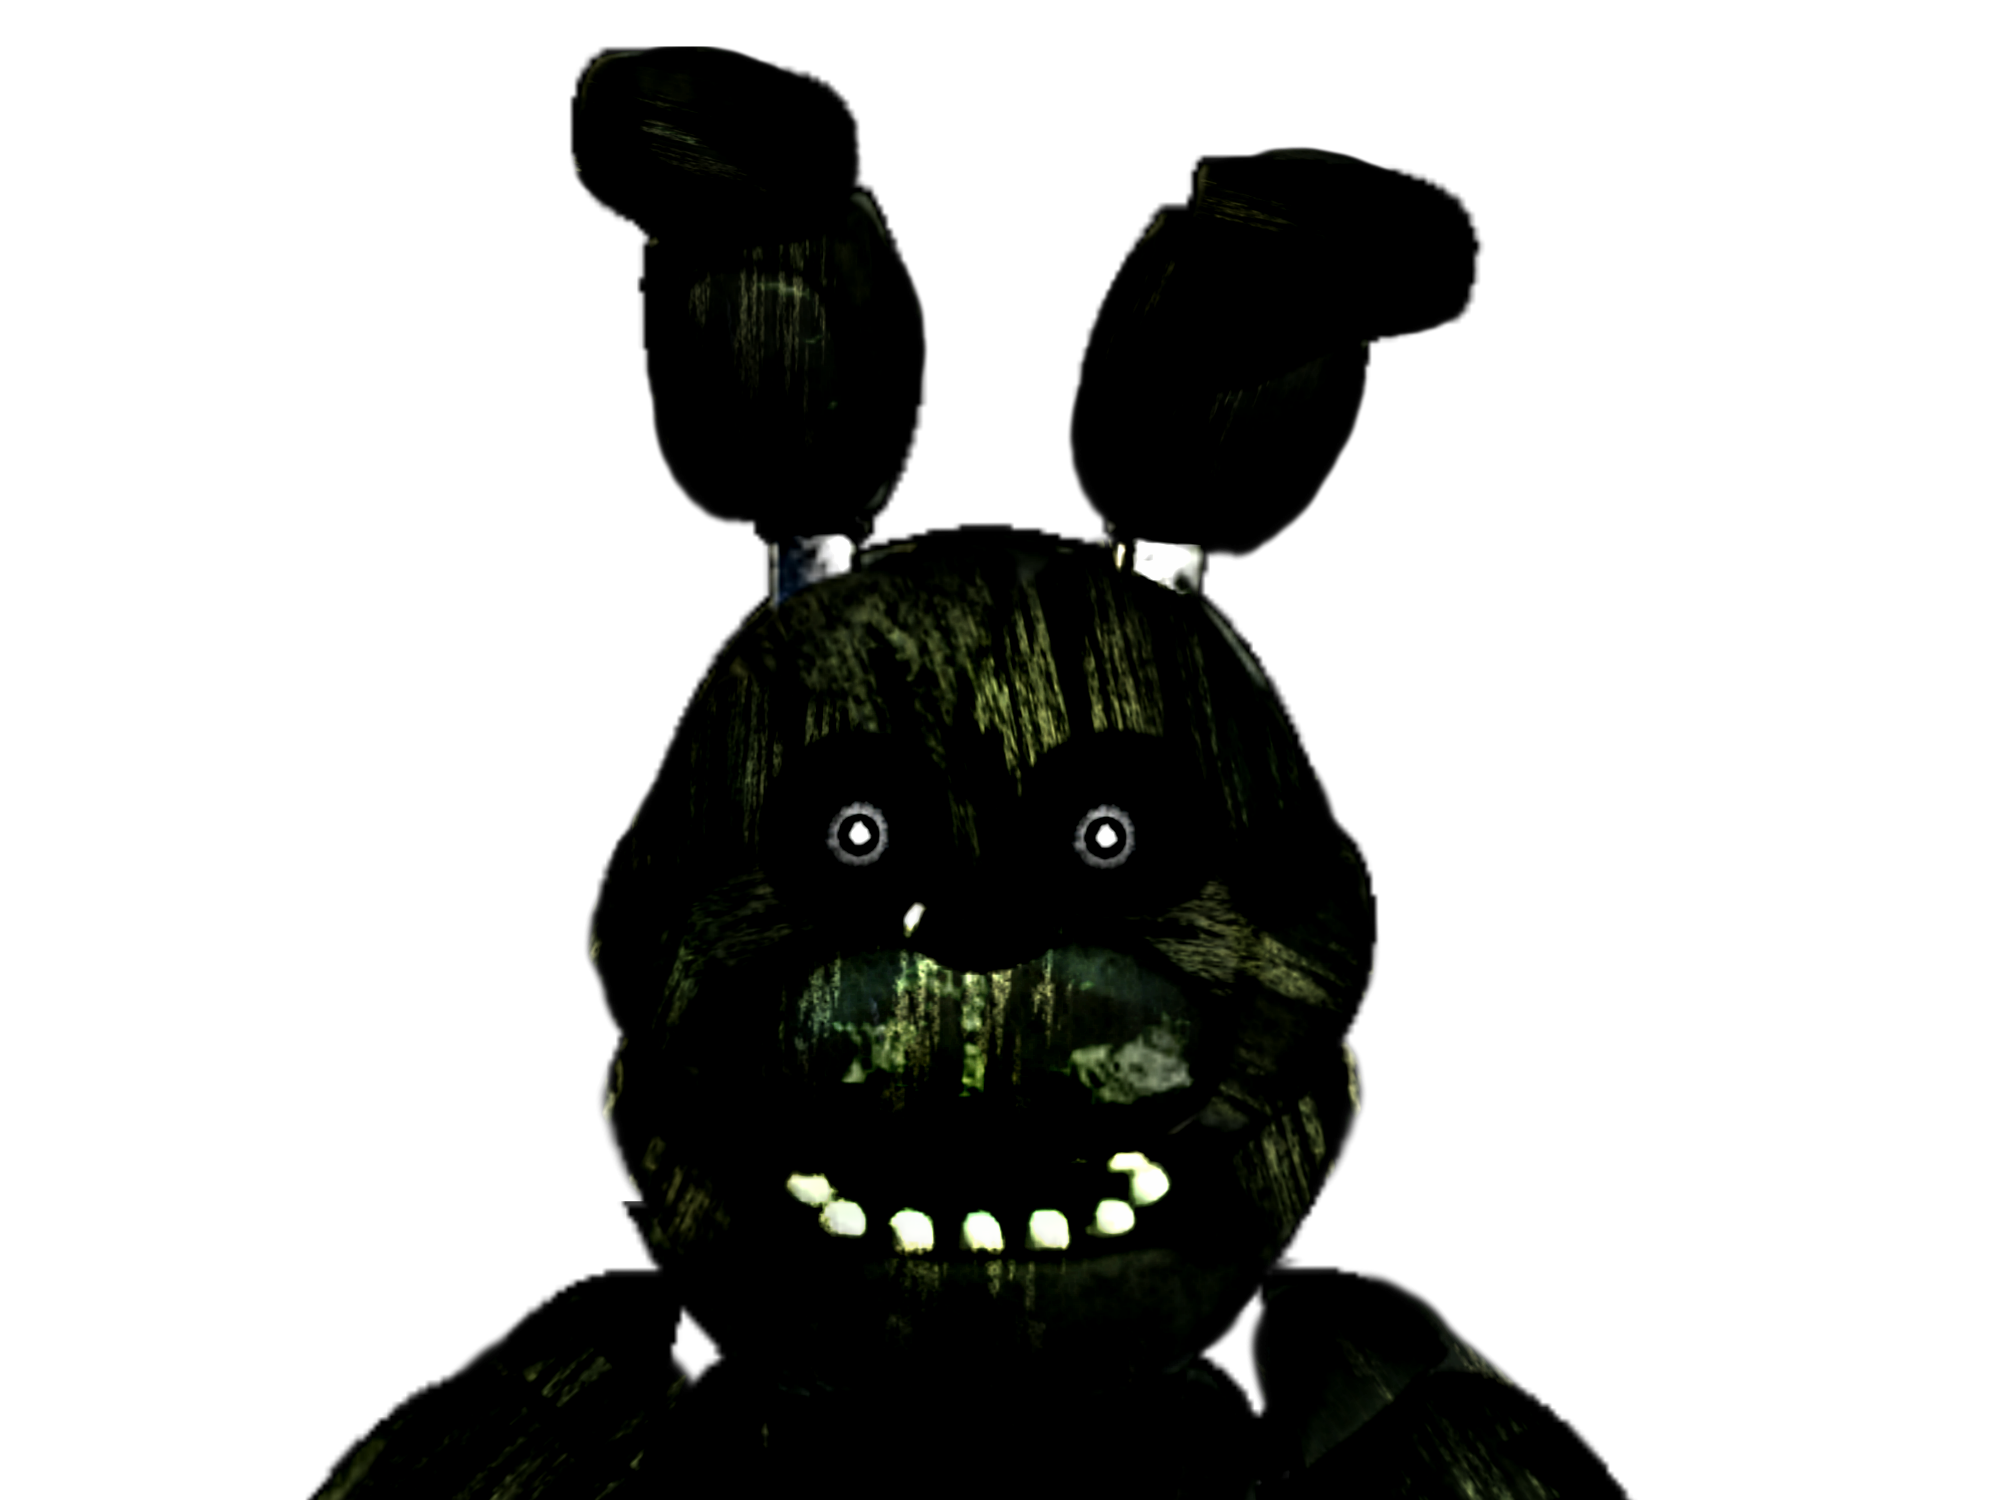 Transparent fnaf bonnie. Phantom edit fivenightsatfreddys